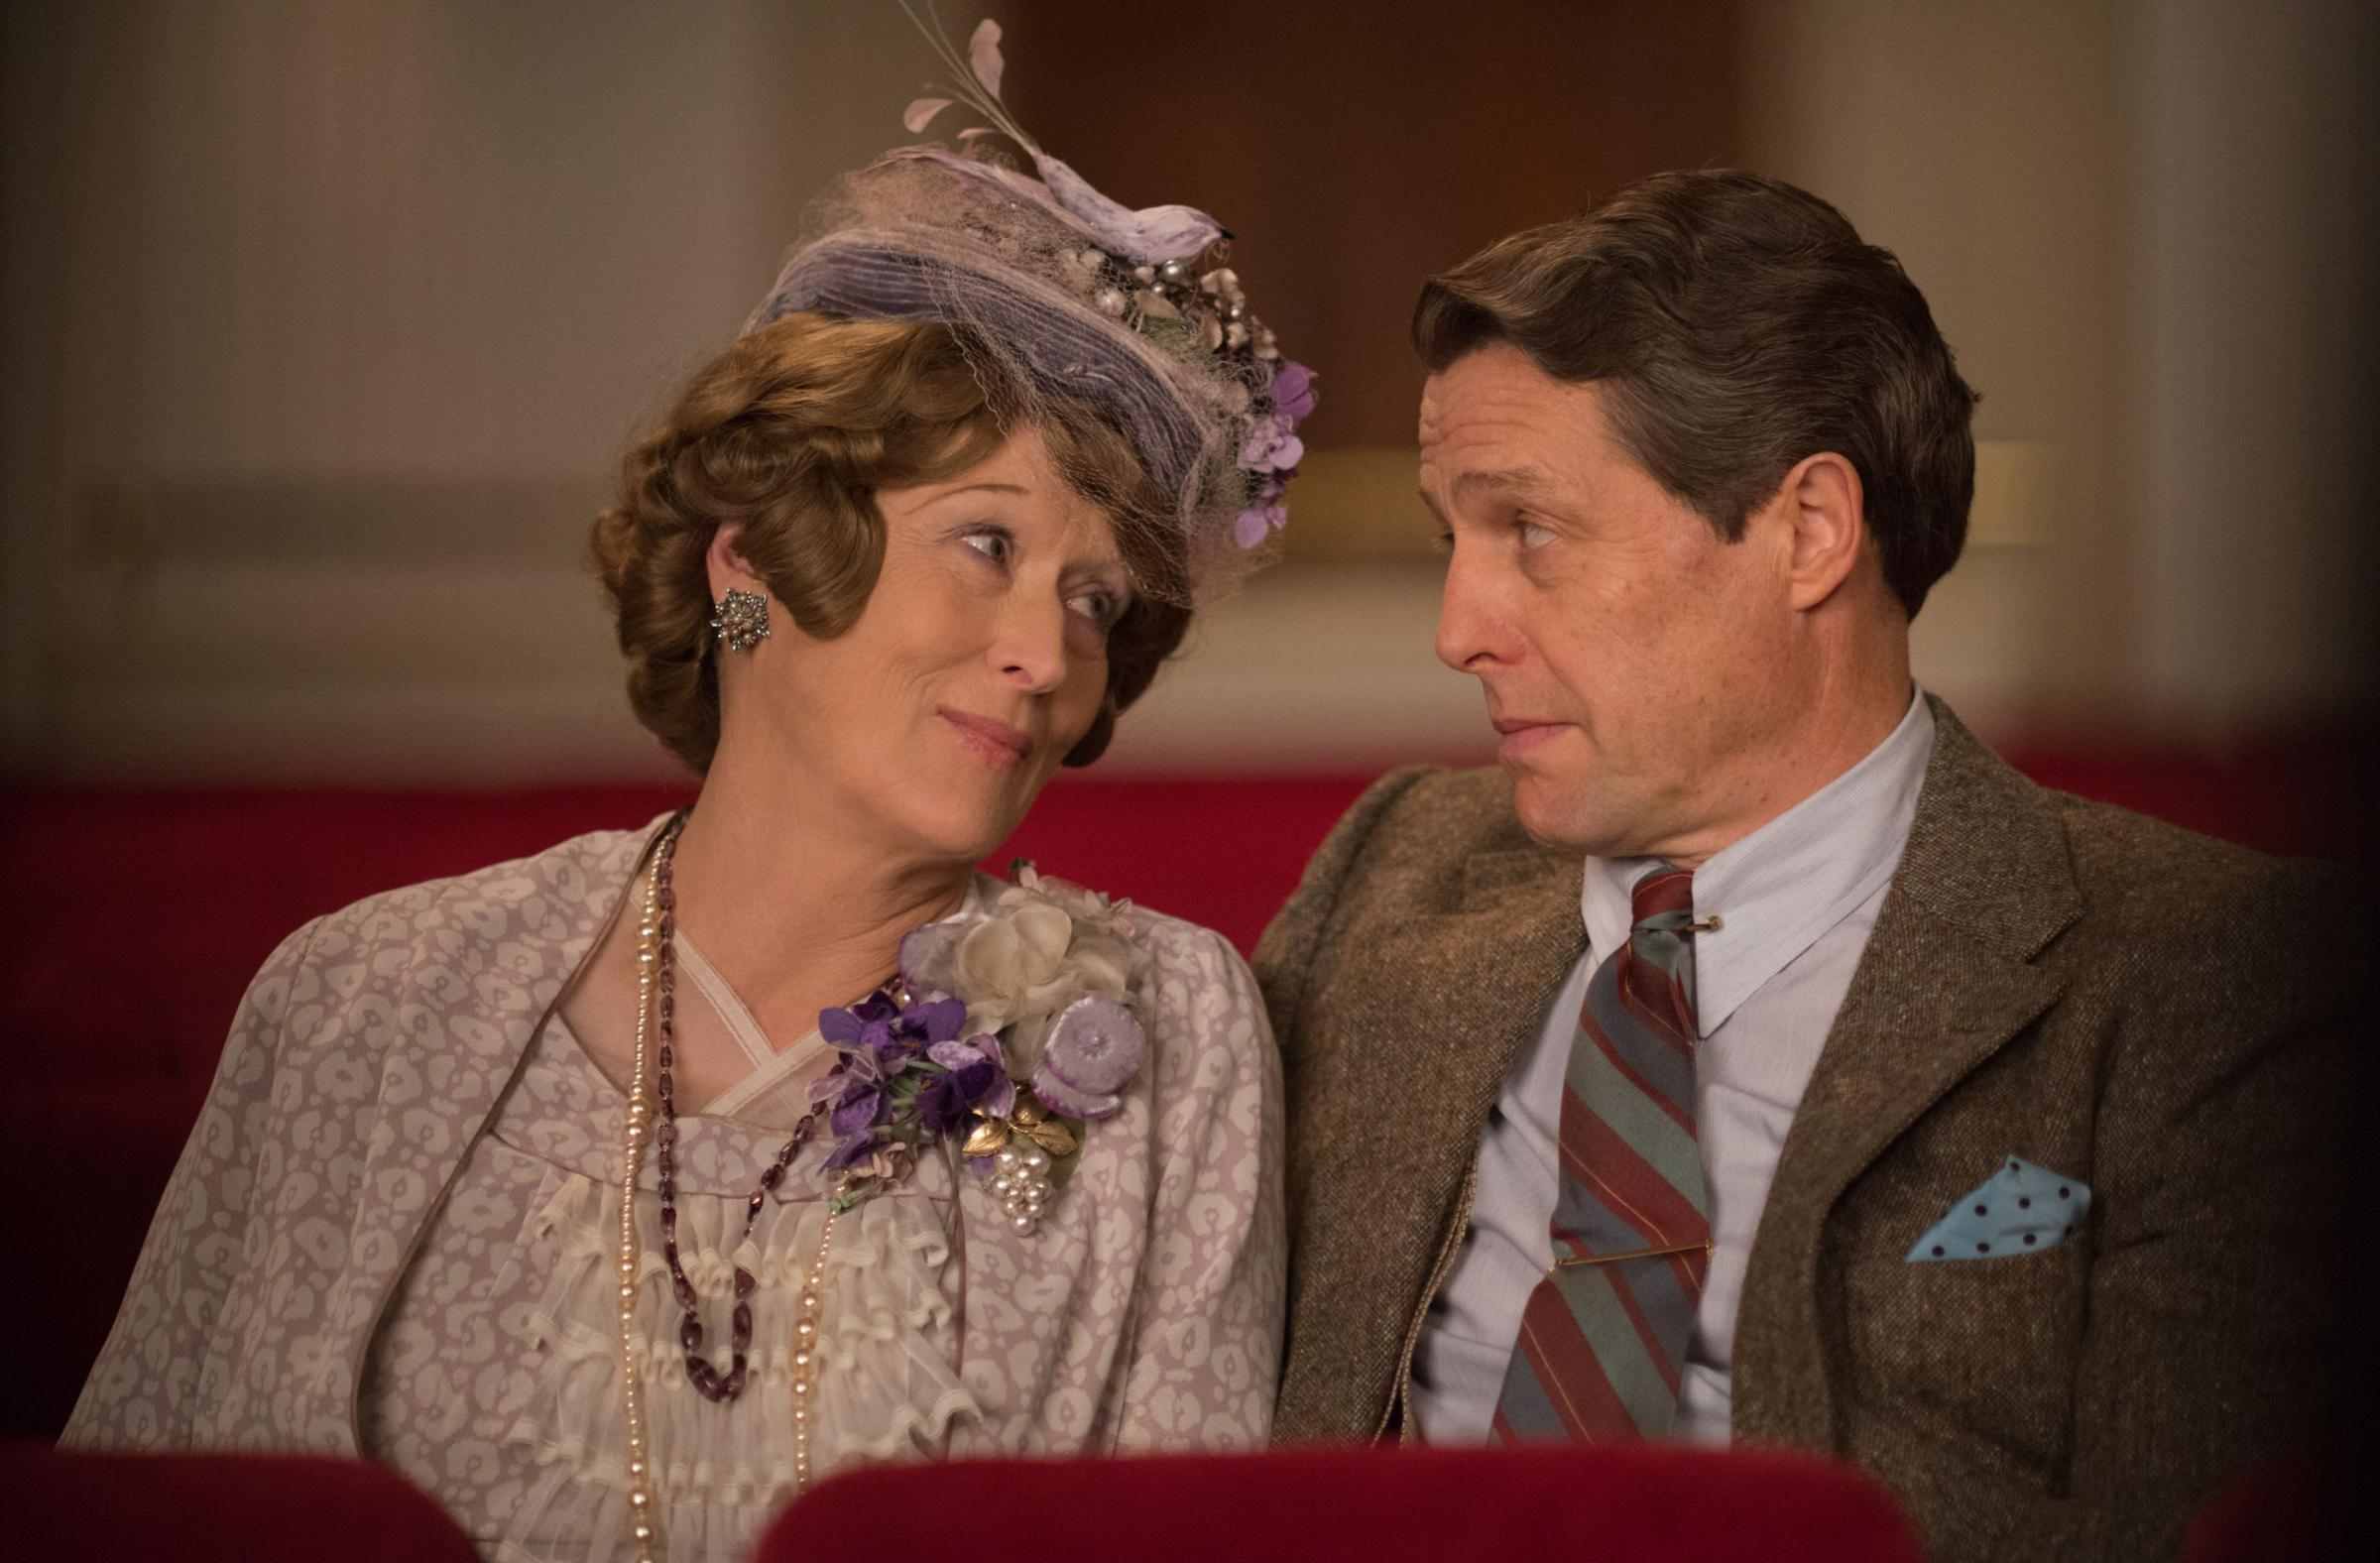 MUSICAL COUPLE: Meryl Streep as Florence and Hugh Grant as St Clair